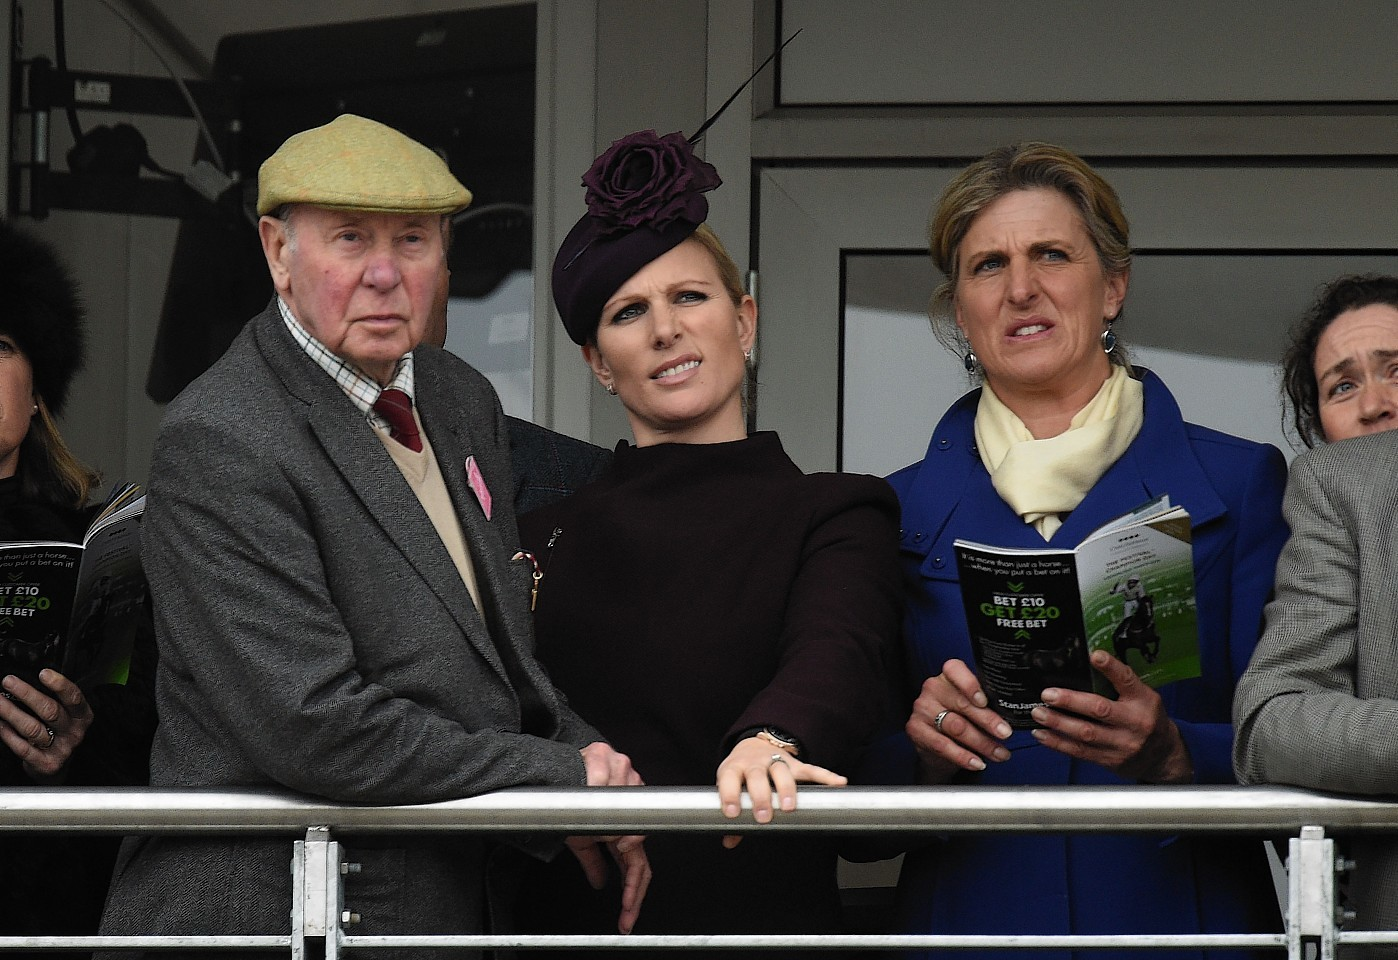 Zara Phillips alongside Owner Trevor Hemmings and Sophie, Countess of Wessex watch the action at Cheltenham